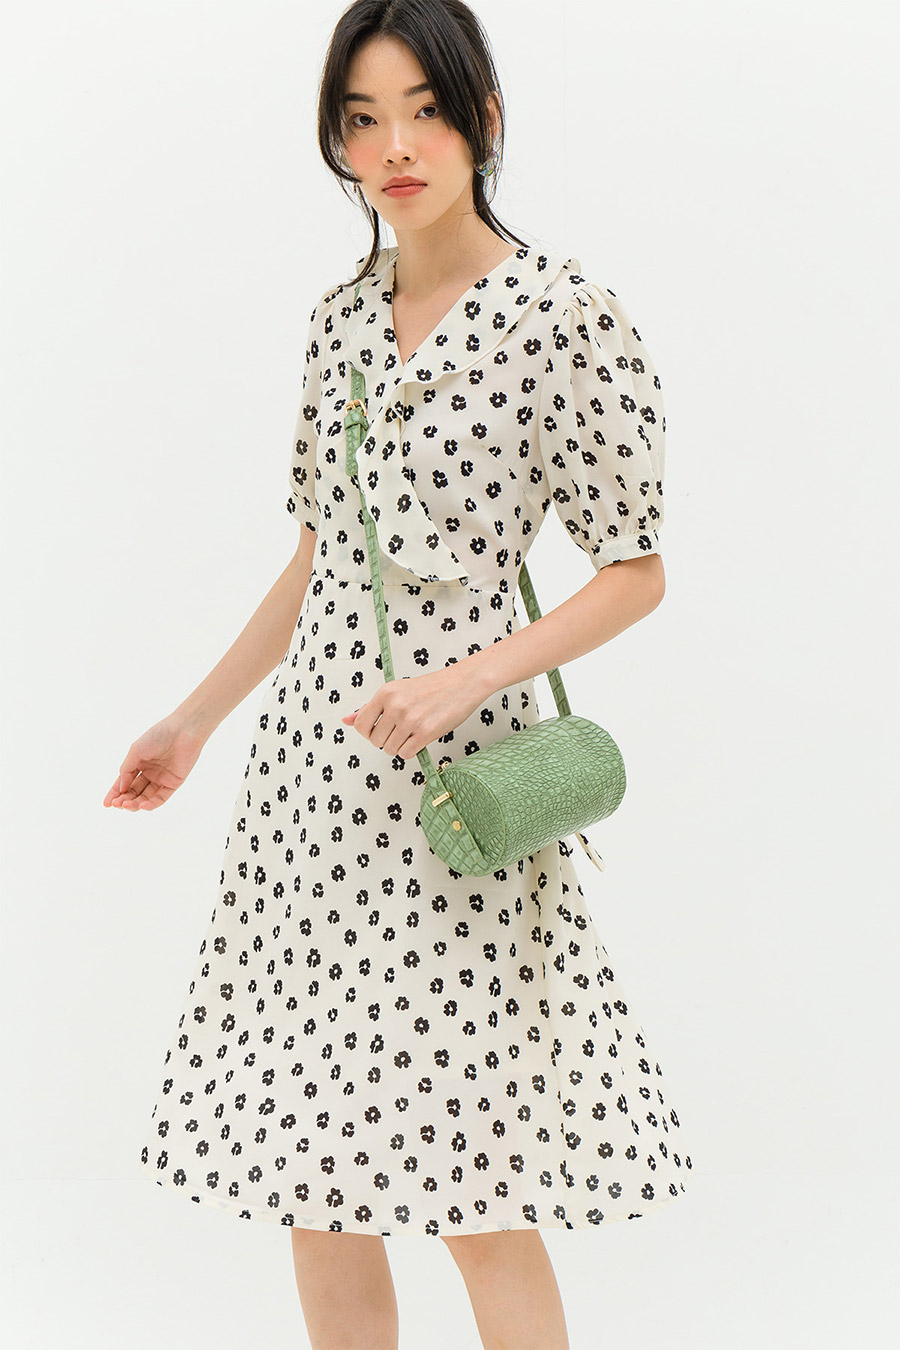 GERVAIS DRESS - LOBLOLLY